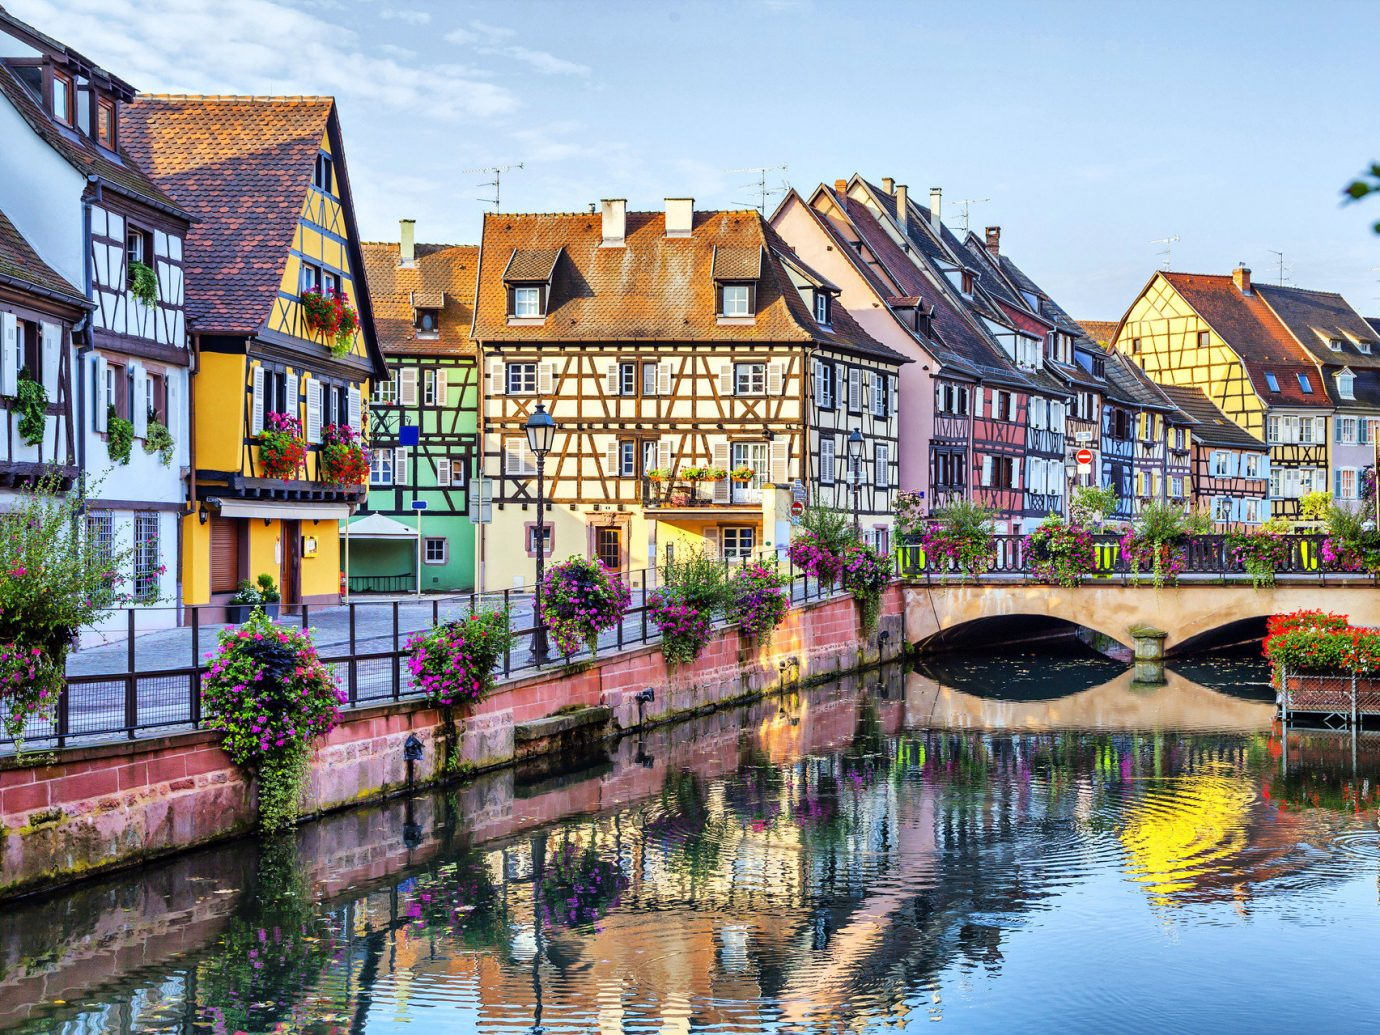 Trip Ideas building water outdoor Canal Town geographical feature landform body of water waterway cityscape neighbourhood human settlement scene house River vacation tourism Harbor Village flower several